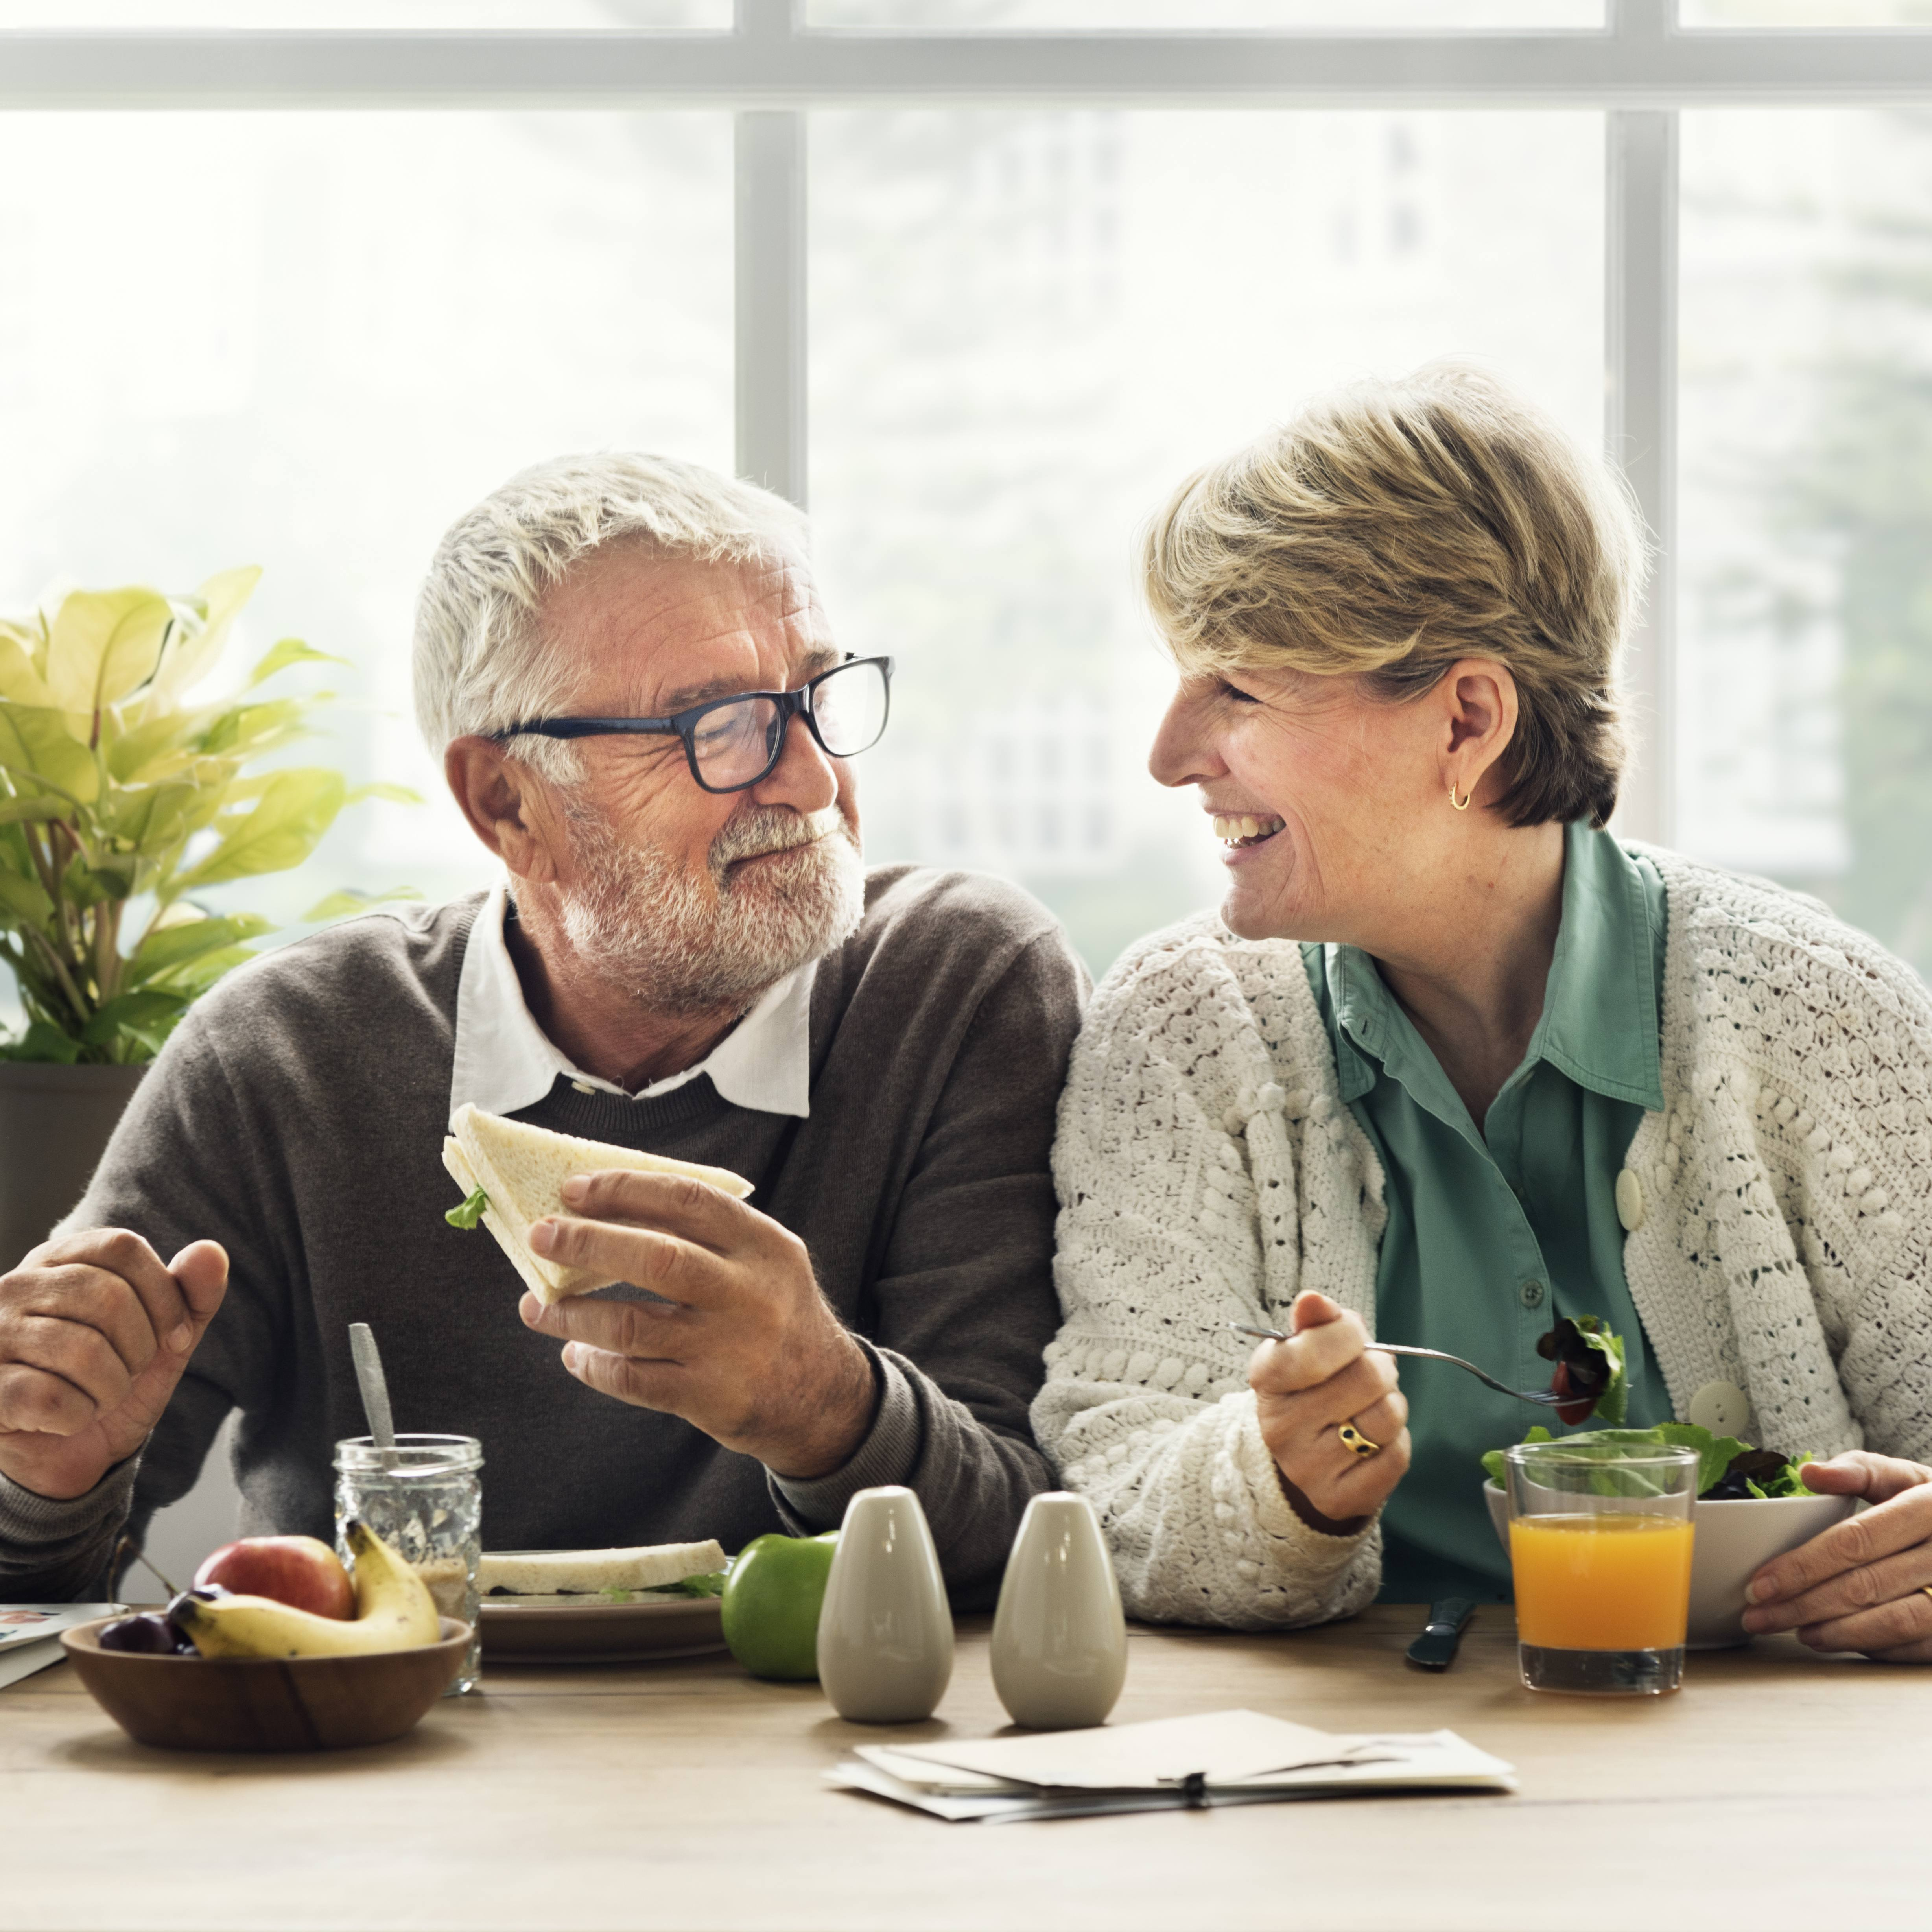 an older couple seated at a table in a sunny room, eating and smiling at one another